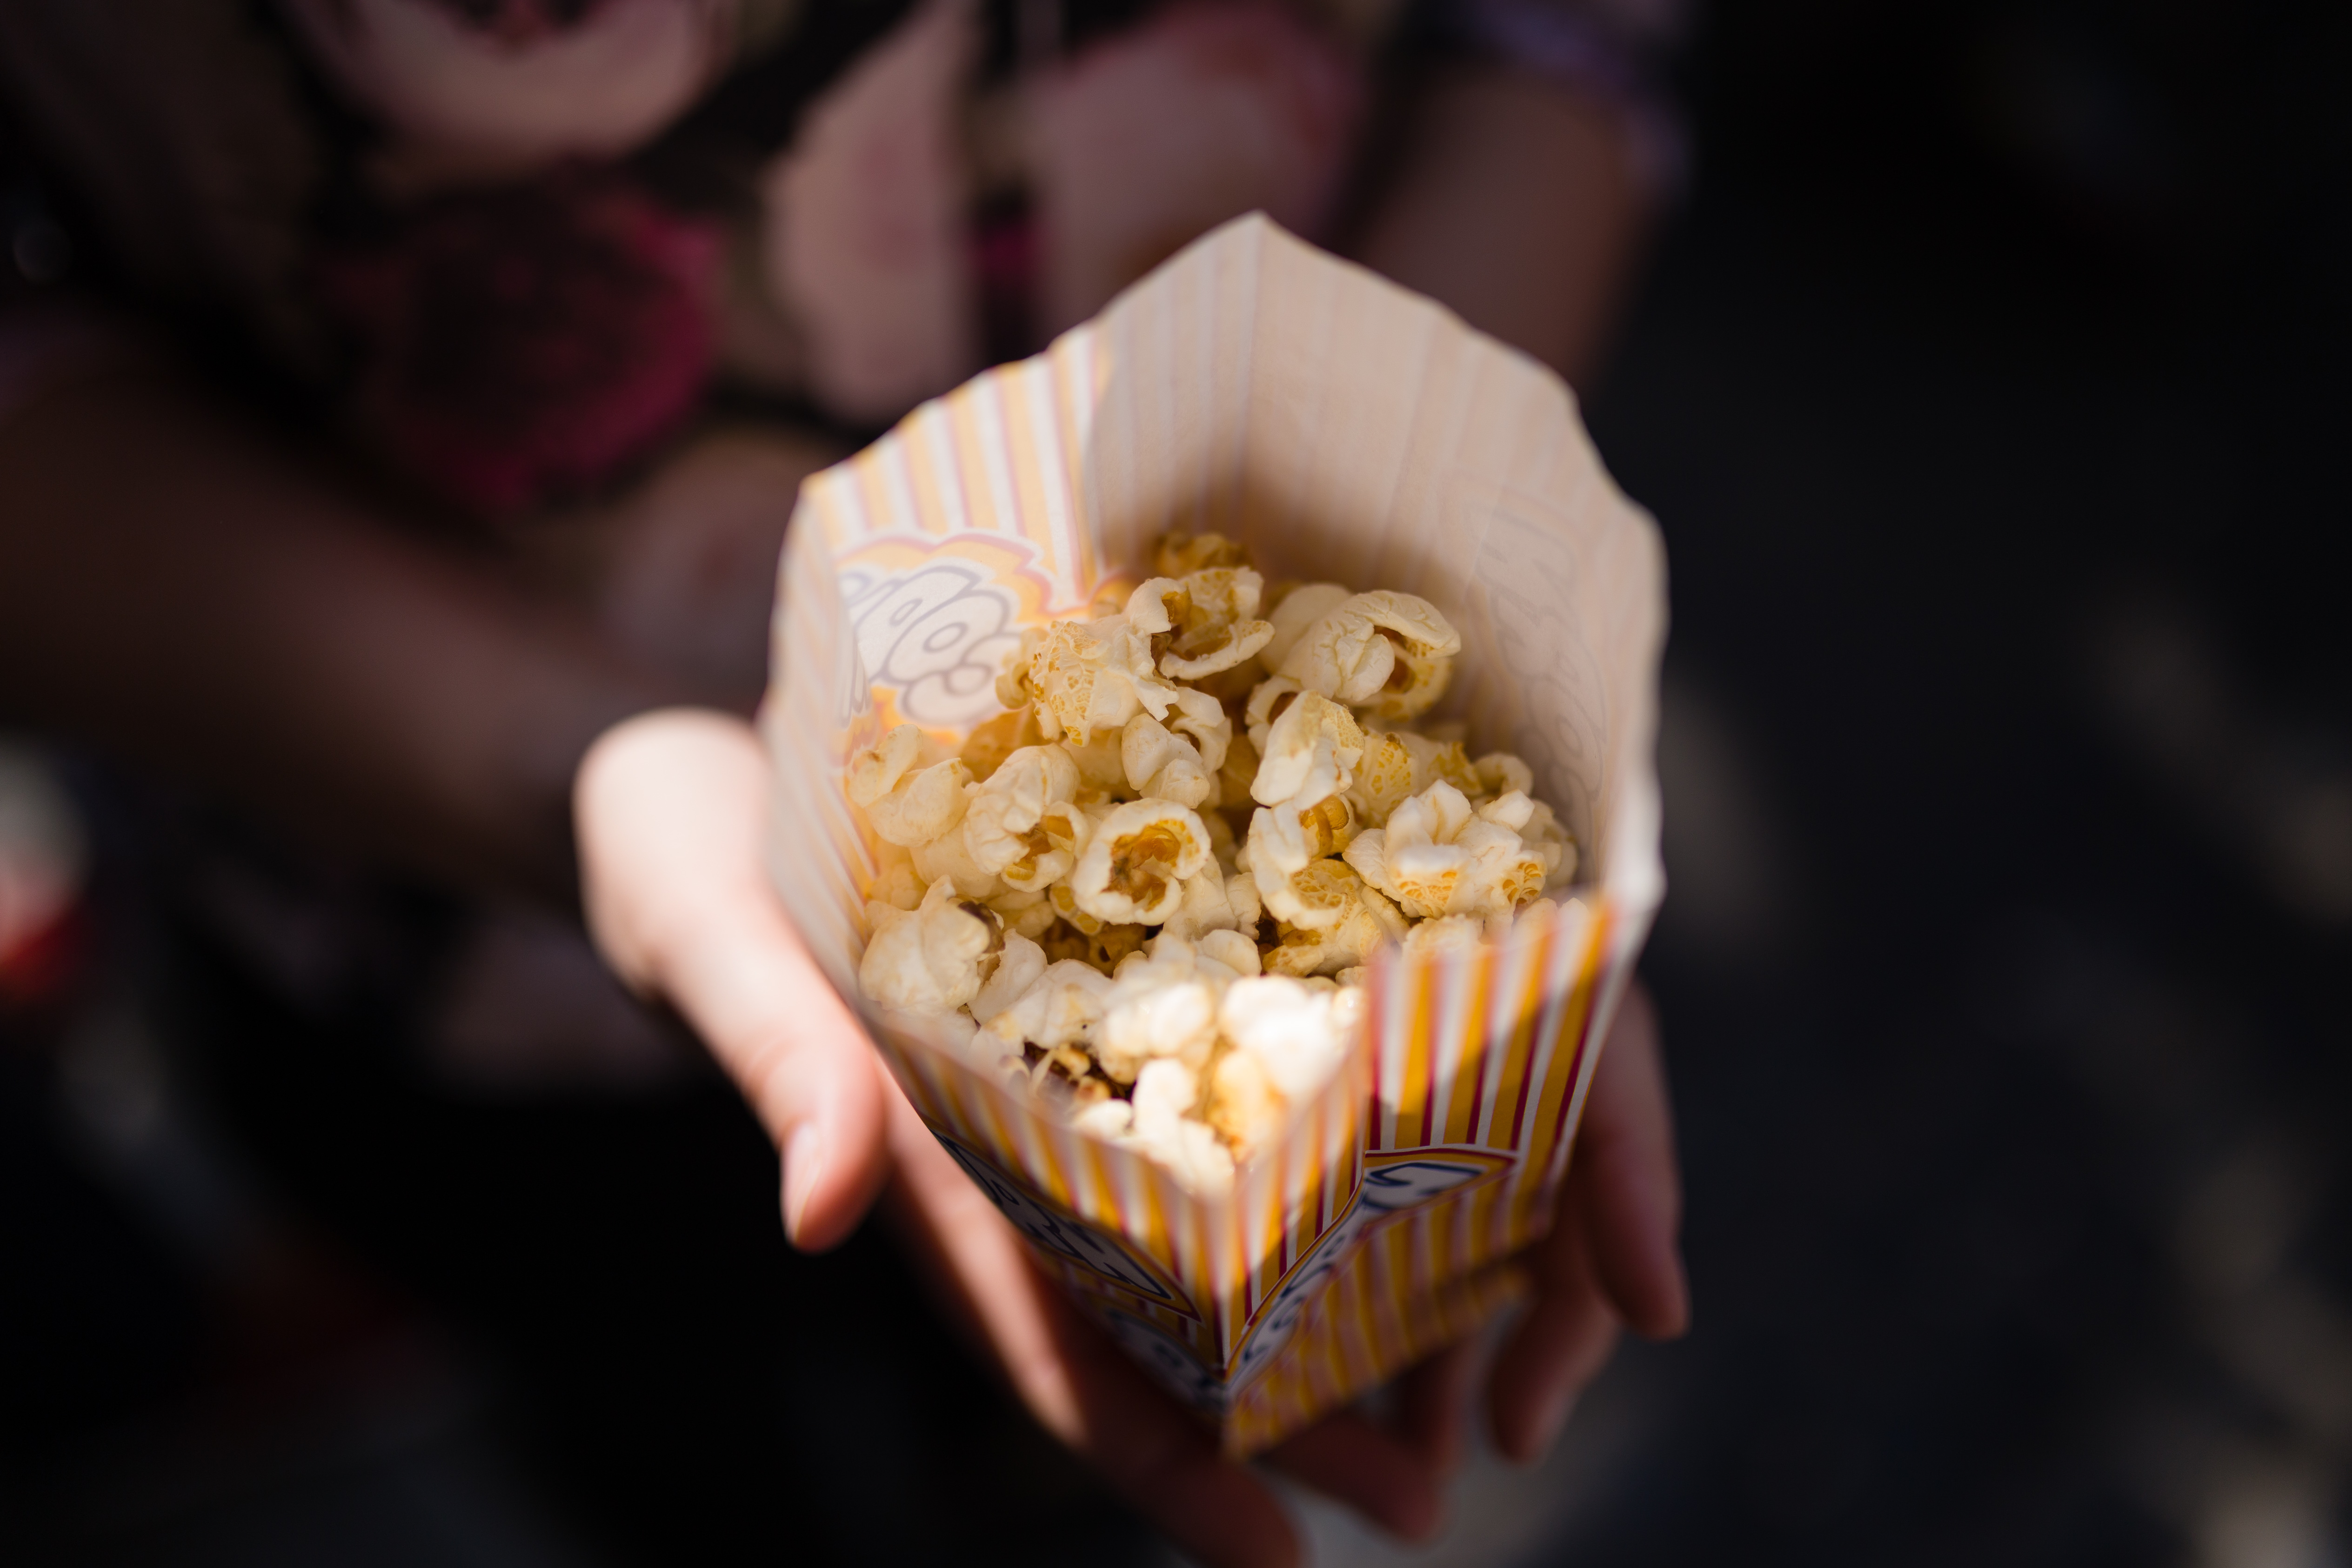 Woman eating low-sodium popcorn salty snack